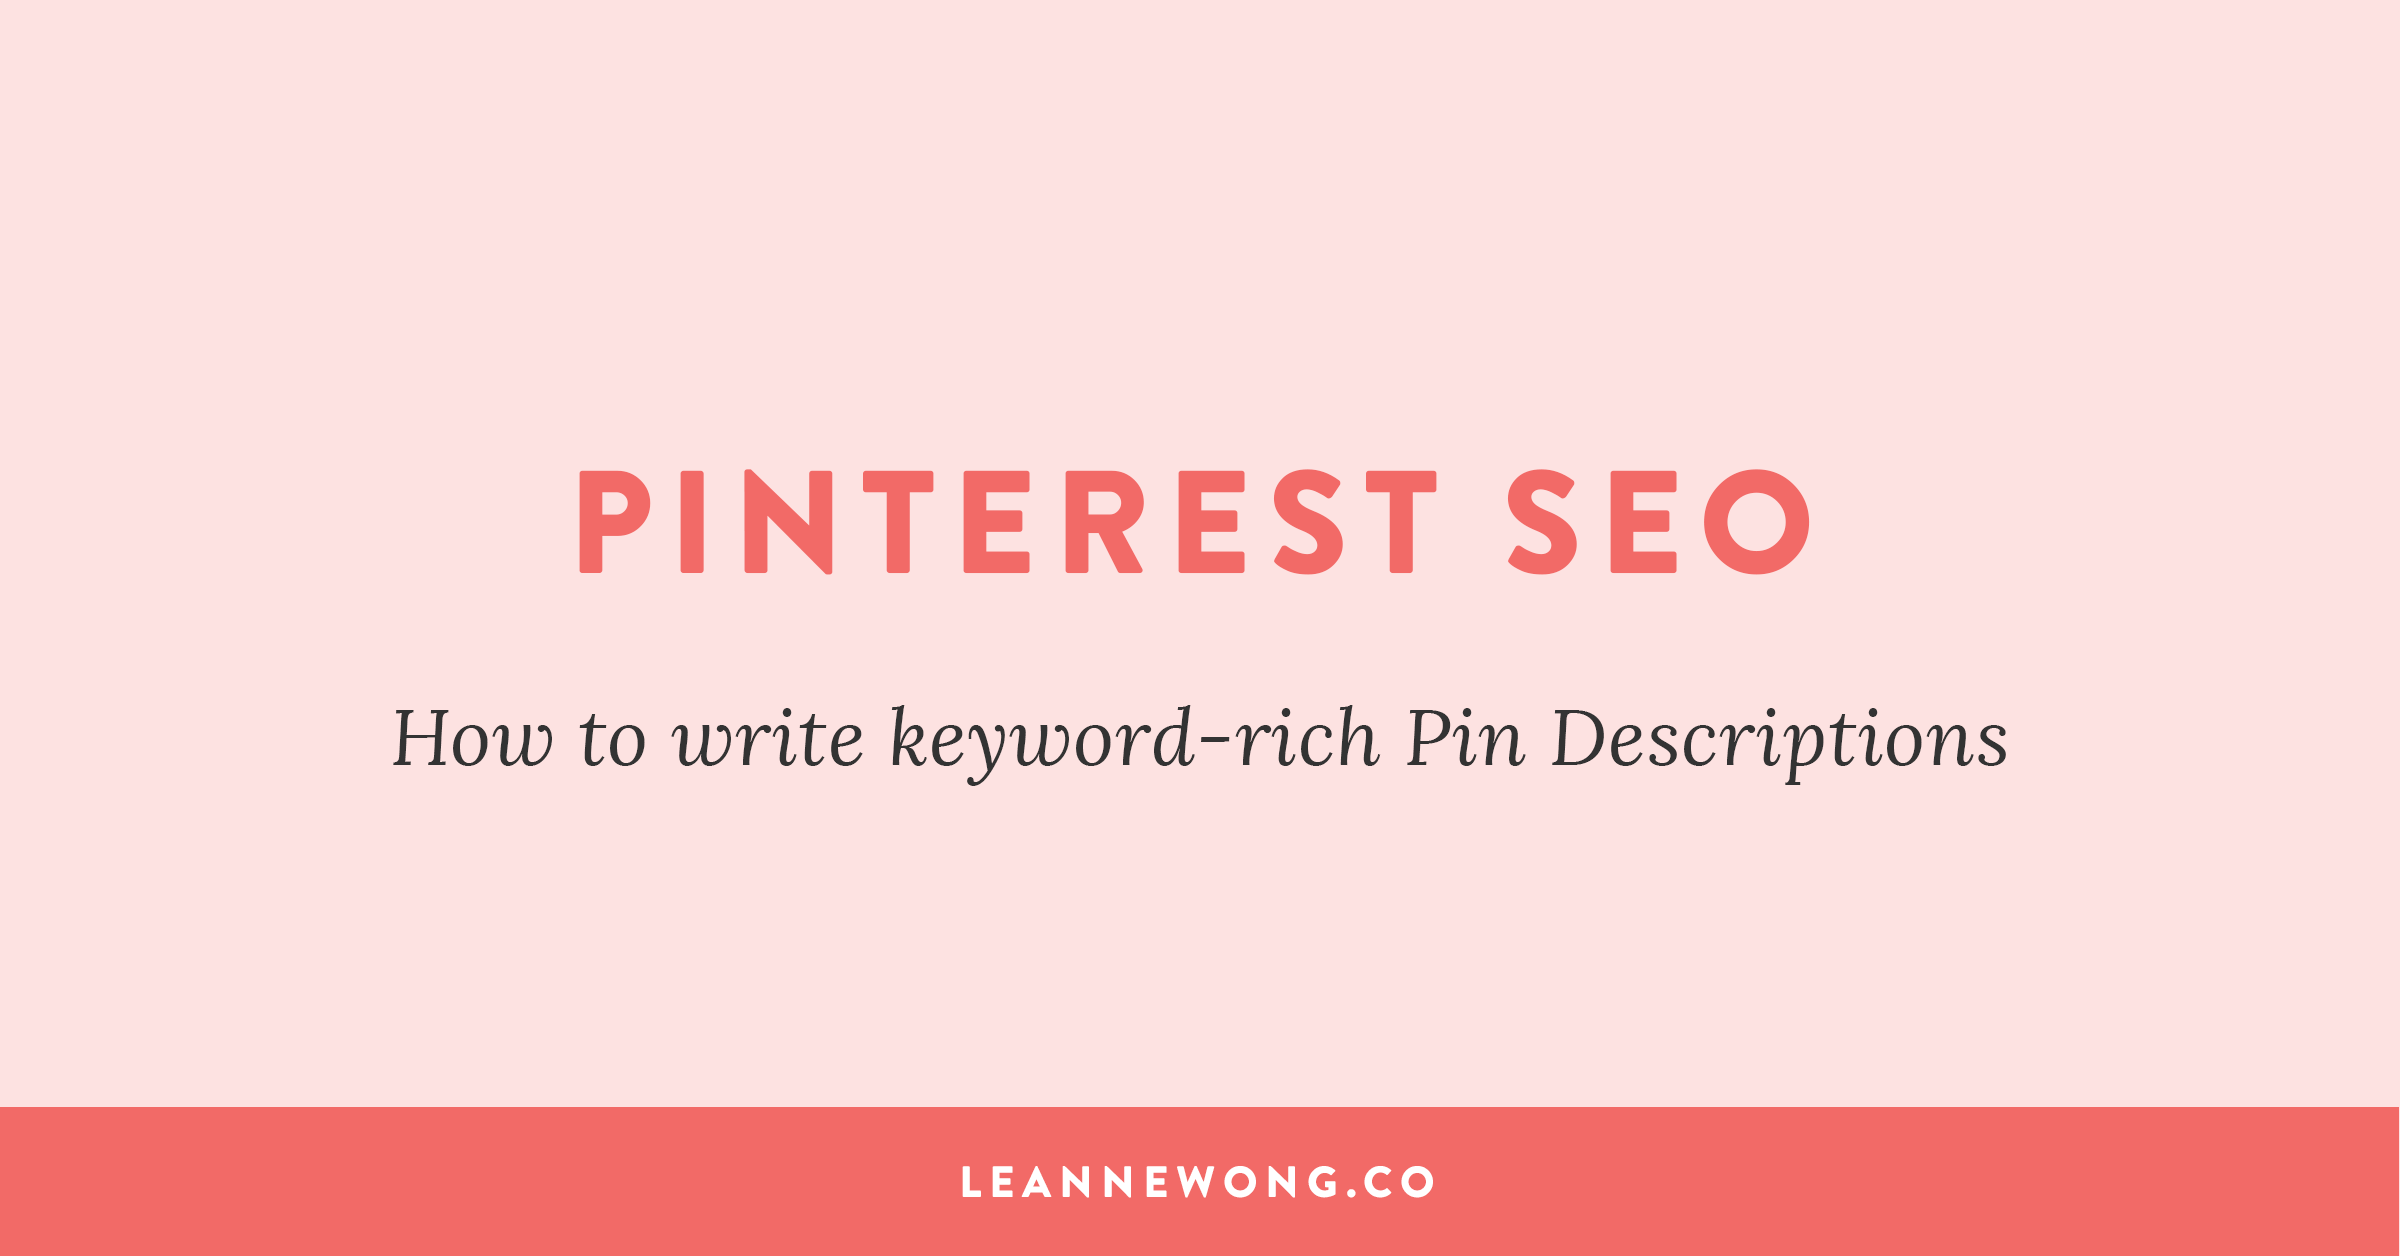 pinterest-seo-description